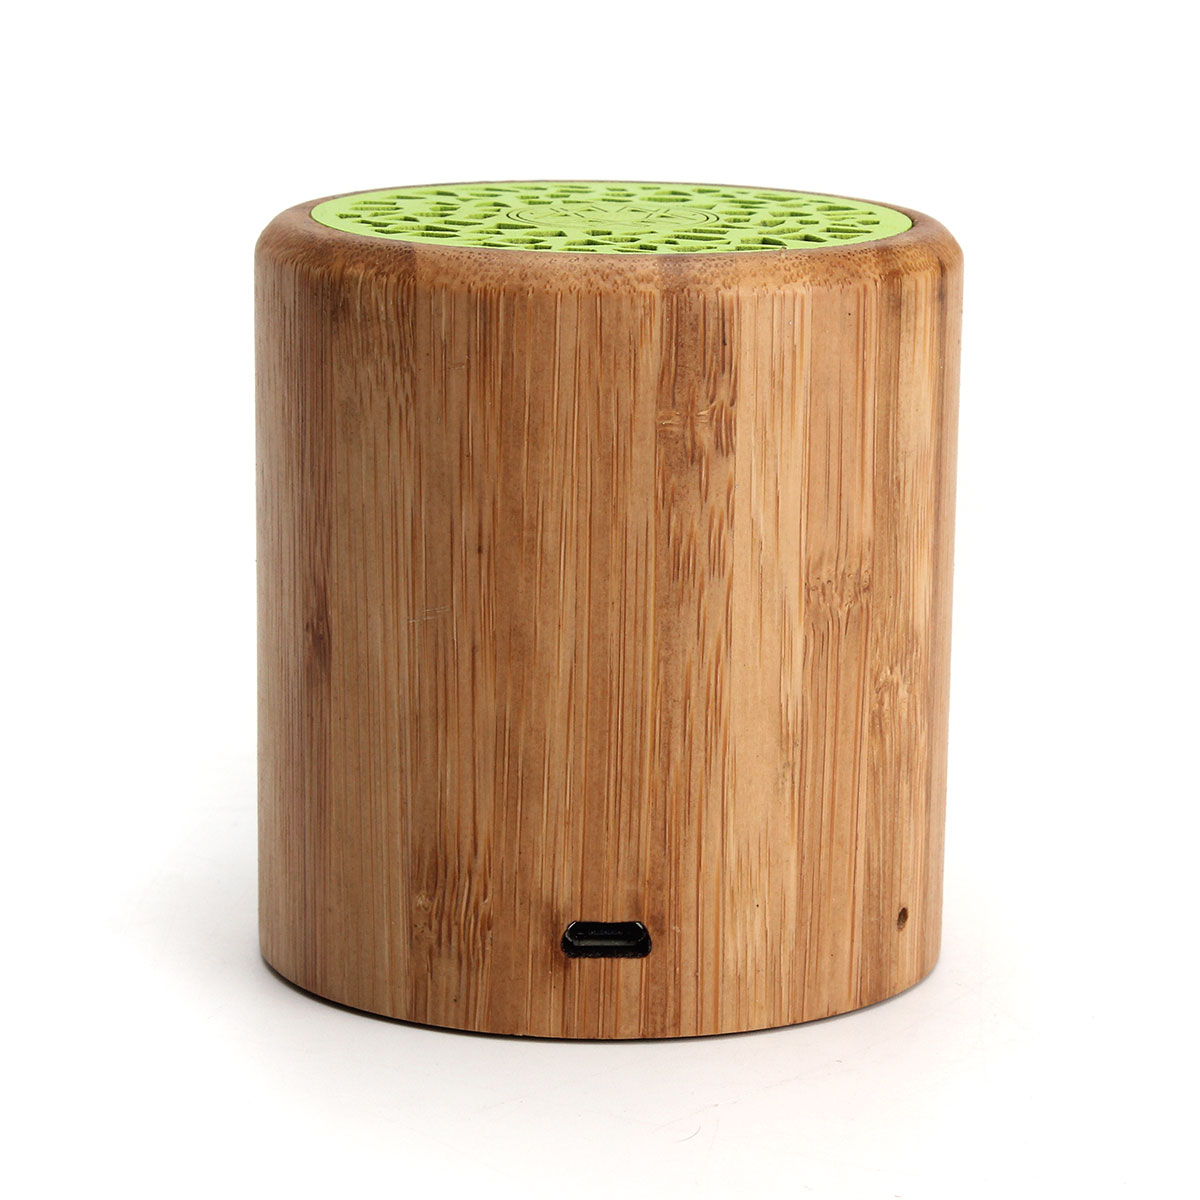 Natural Bamboo Portable Speaker Wireless Bluetooth USB Speaker Sound Box MP3 Super Bass Loudspeaker For Mobile Phone PC(China (Mainland))